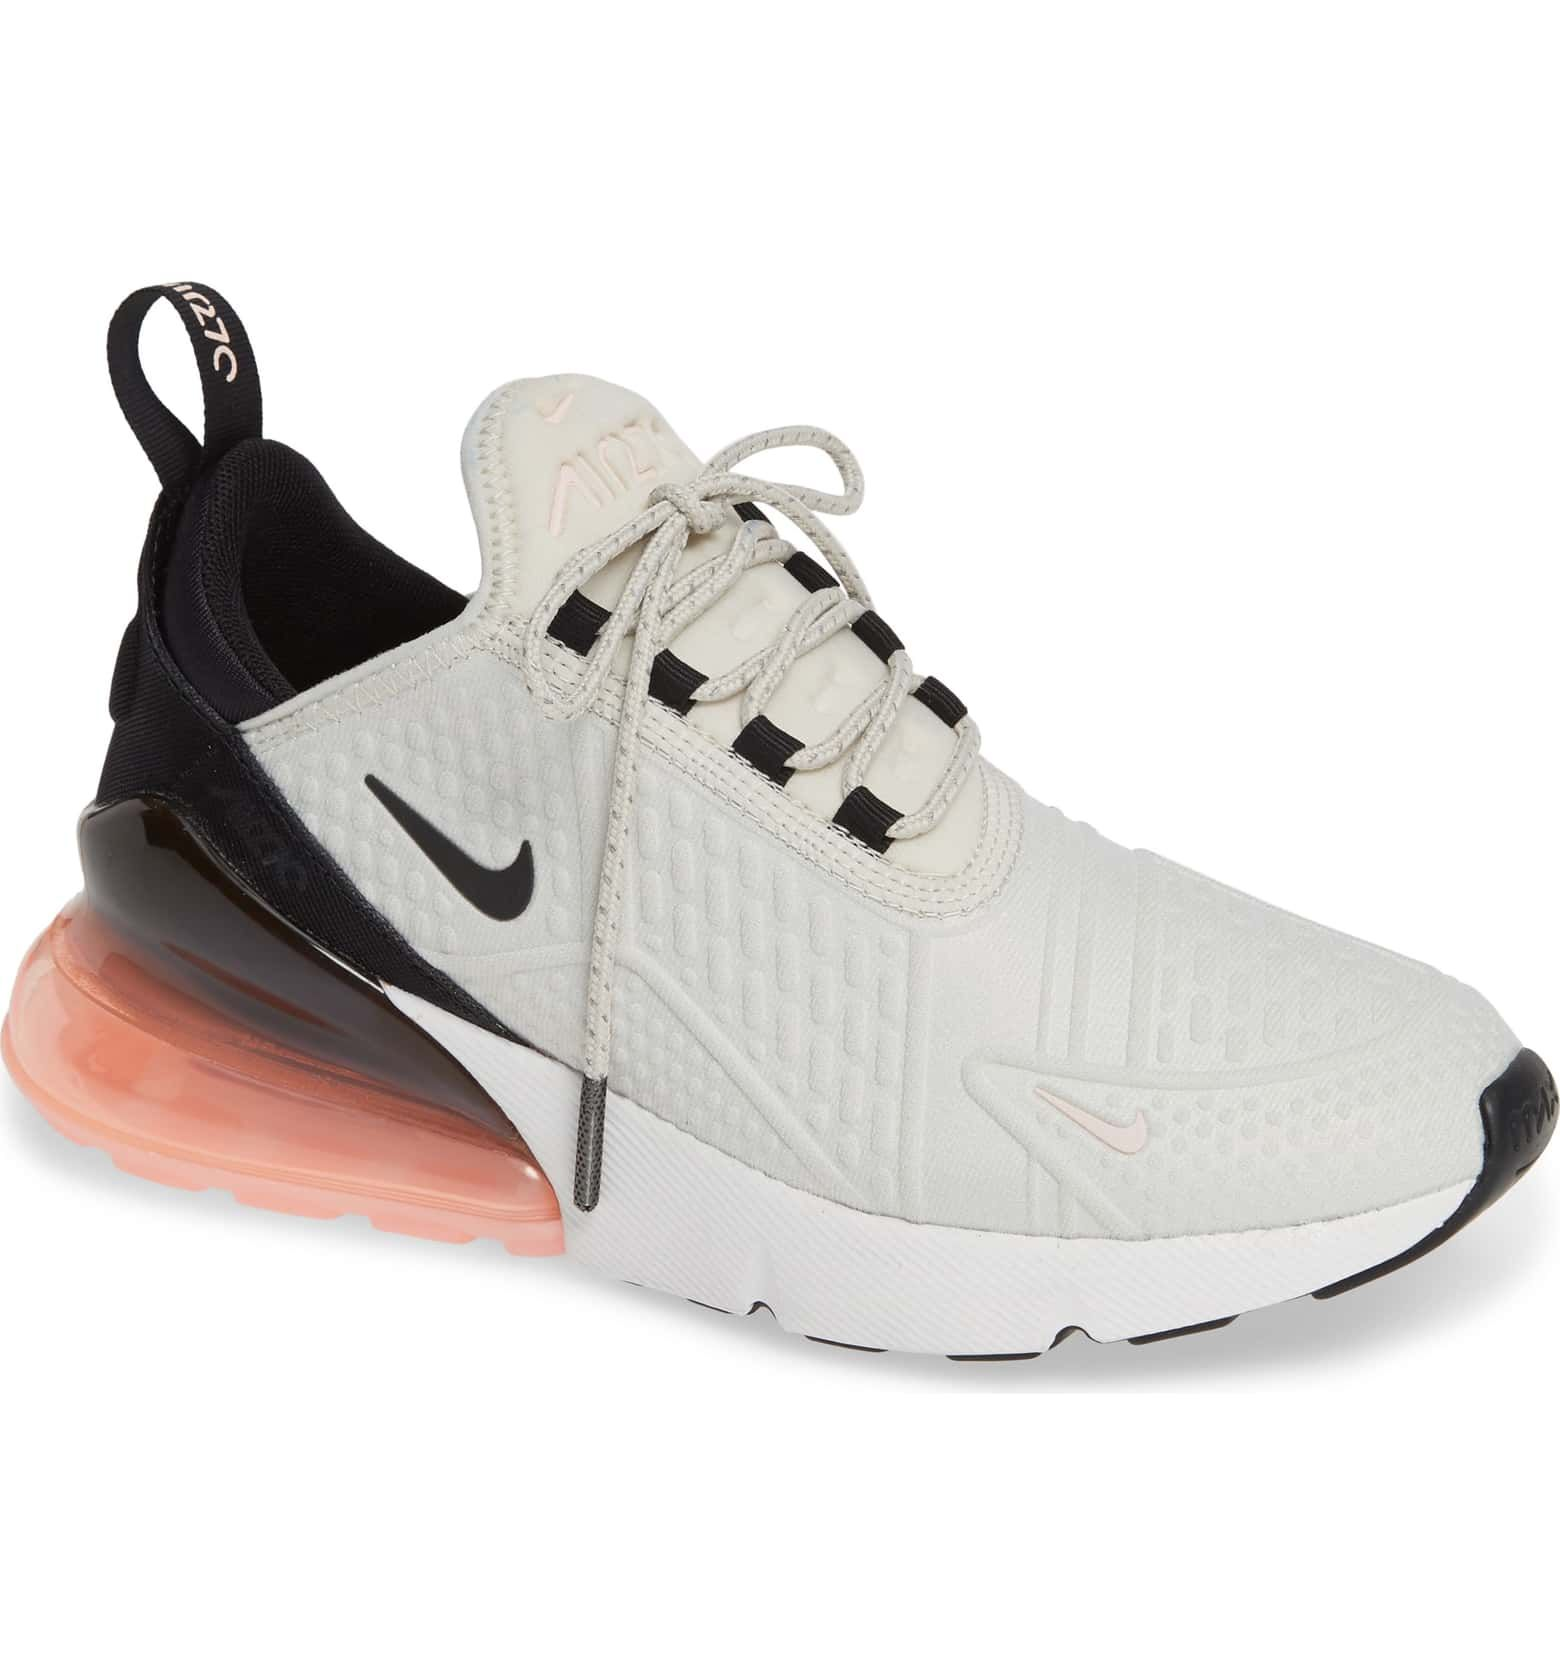 9c5e9fb3c5 Air Max 270 Premium Sneaker, Main, color, LIGHT BONE/ BLACK- PINK- WHITE